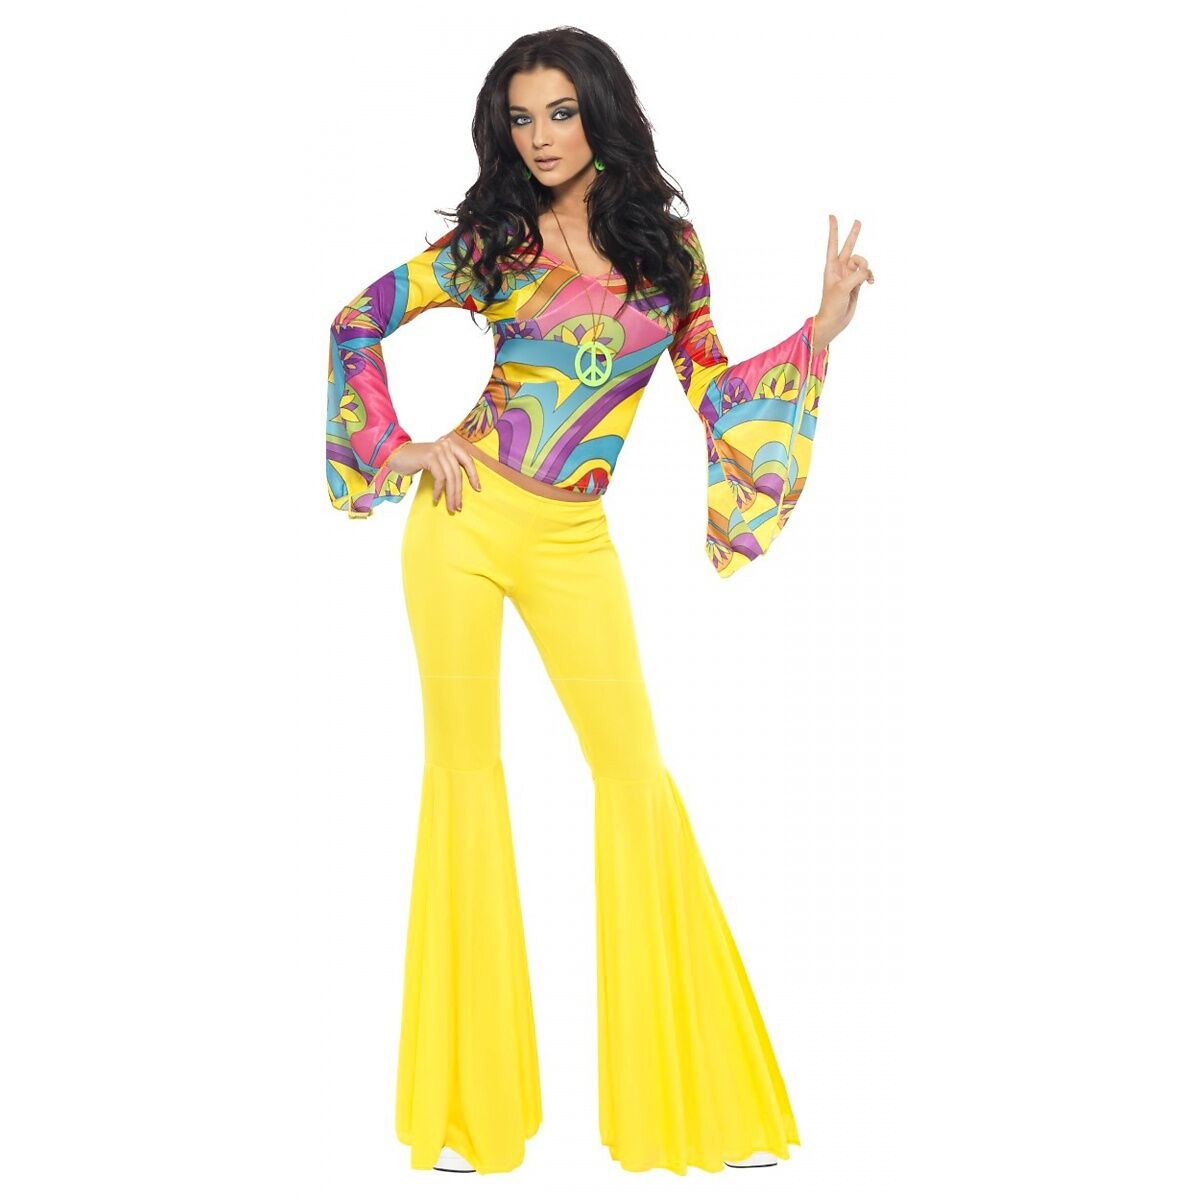 Fever 70s Groovy Babe Costume Small Ebay Picture 1 5